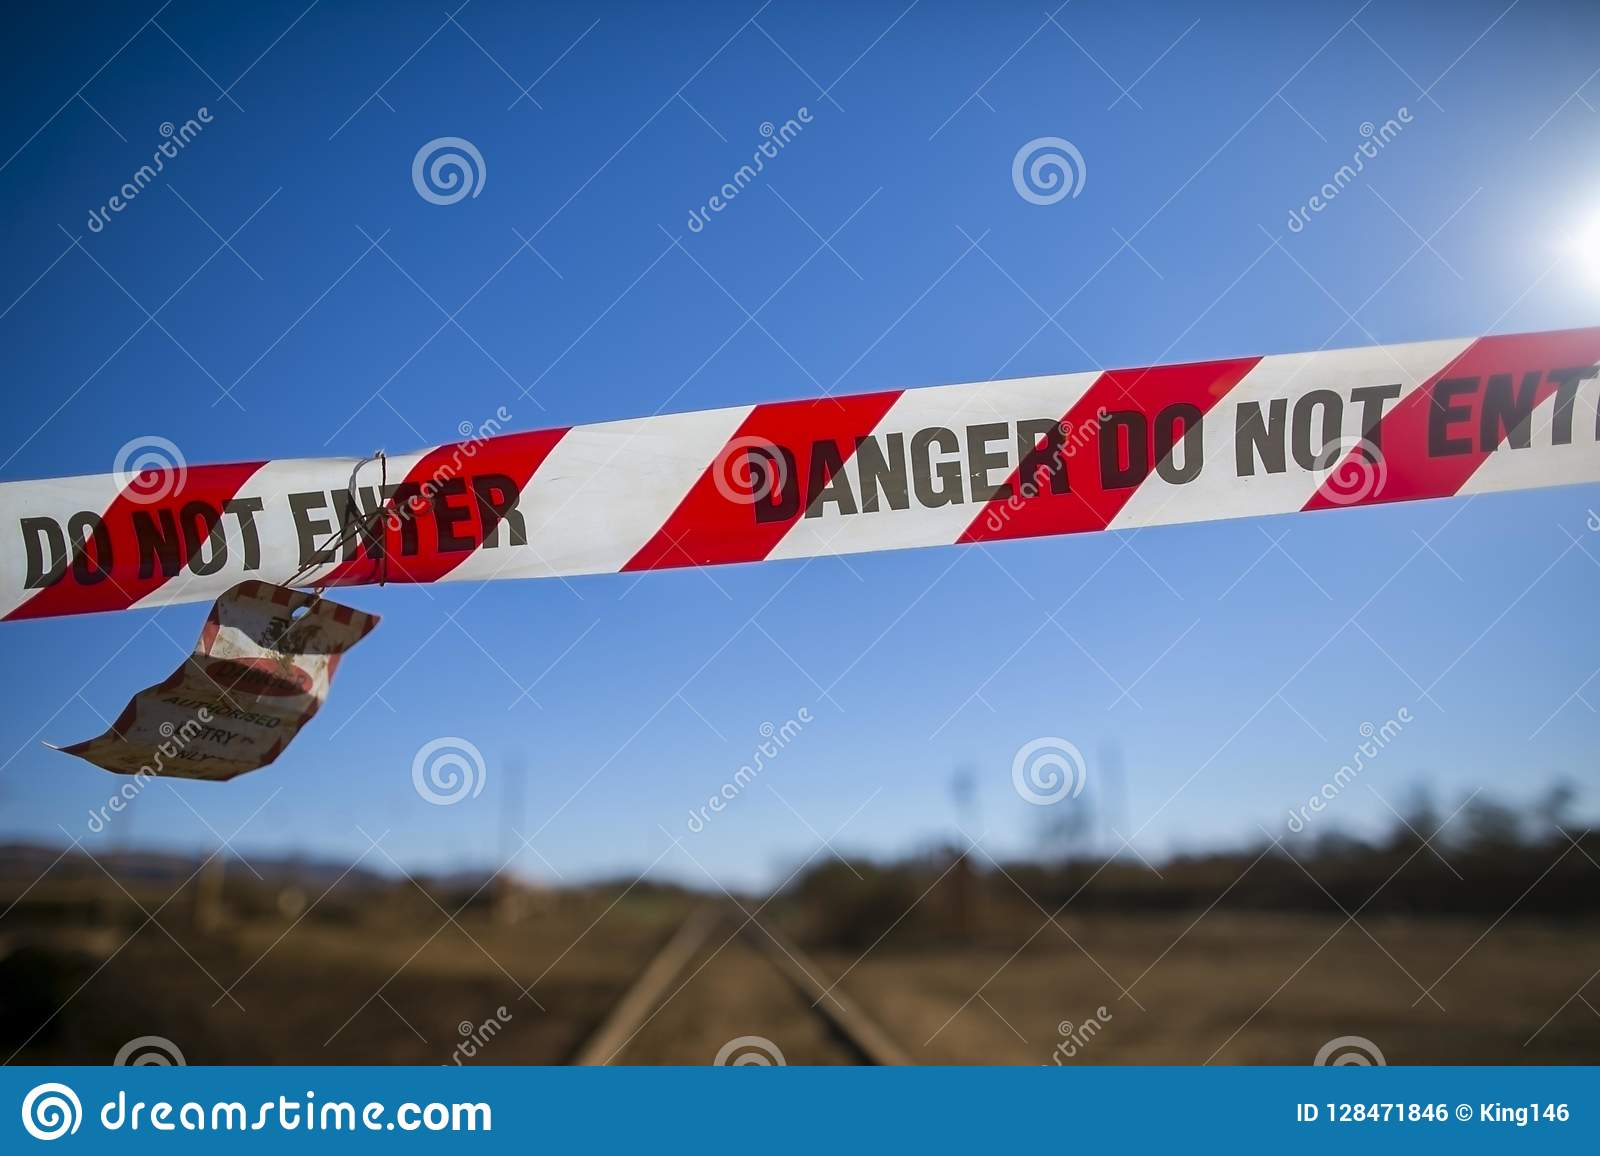 Danger red and white tape barricade exclusion zone area with written authorised personnel entry only on train track